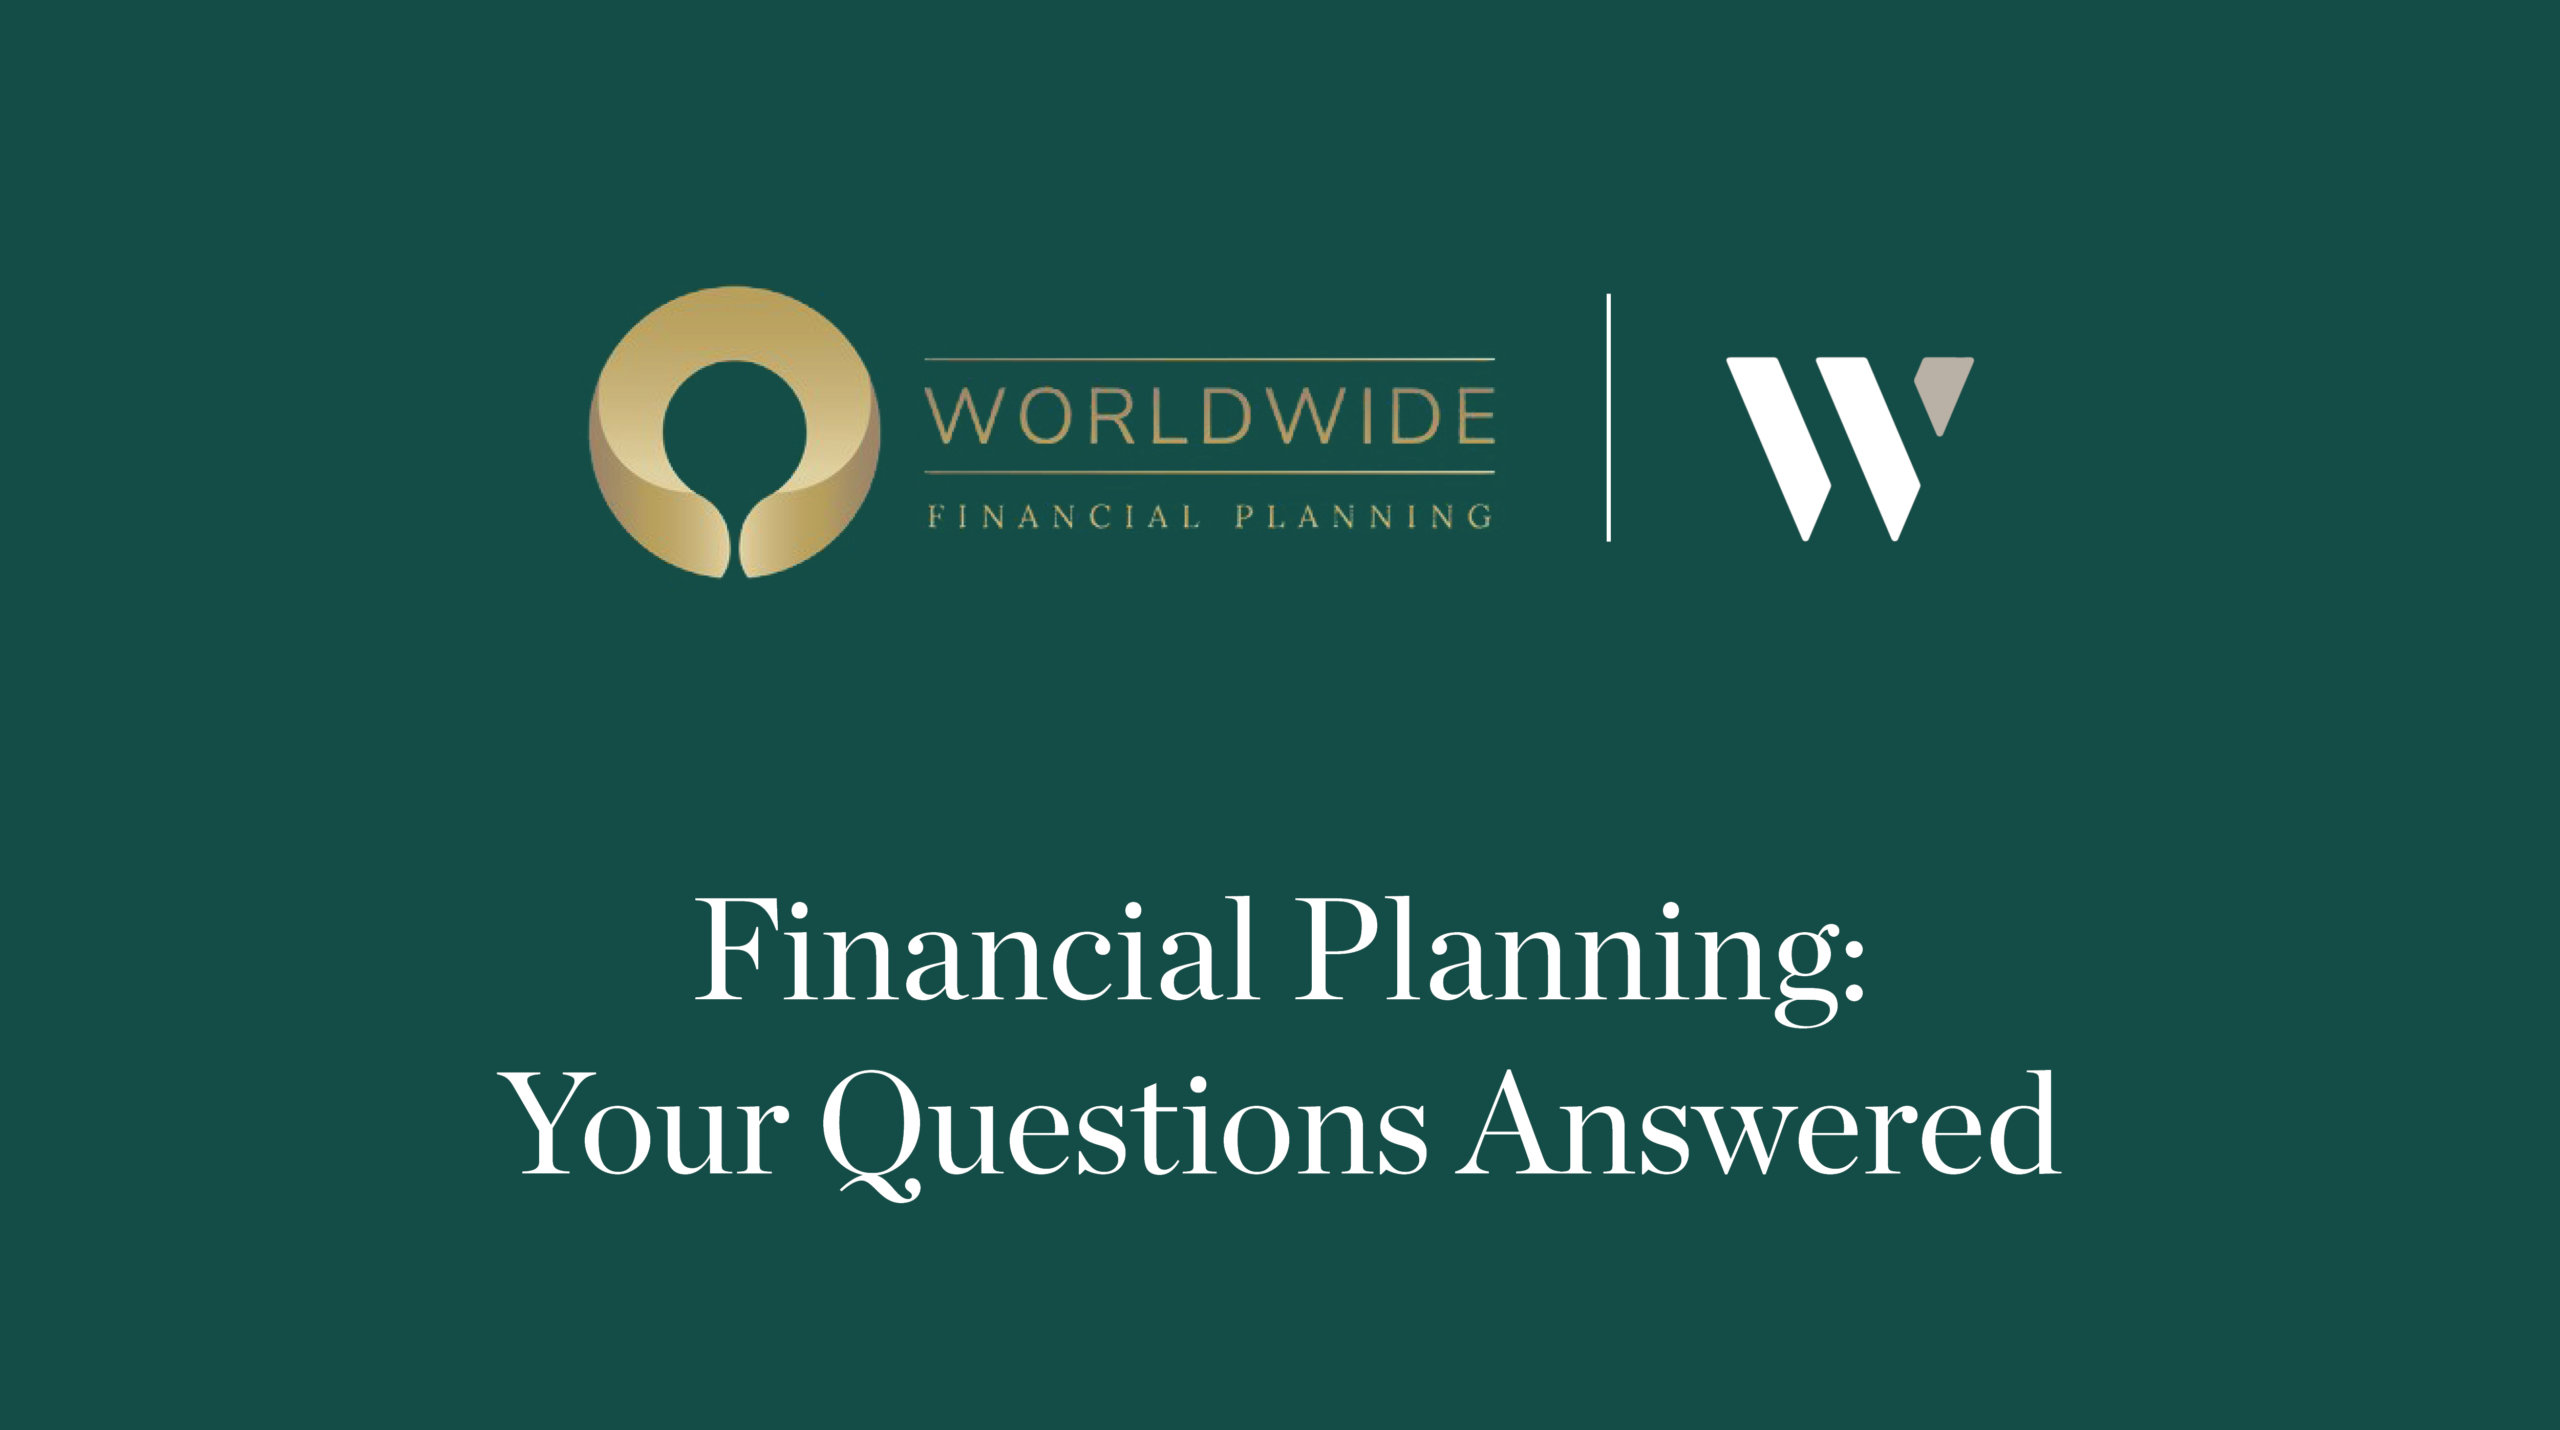 Worldwide Financial Planning and Whyfield Accountants - Your Questions Answered